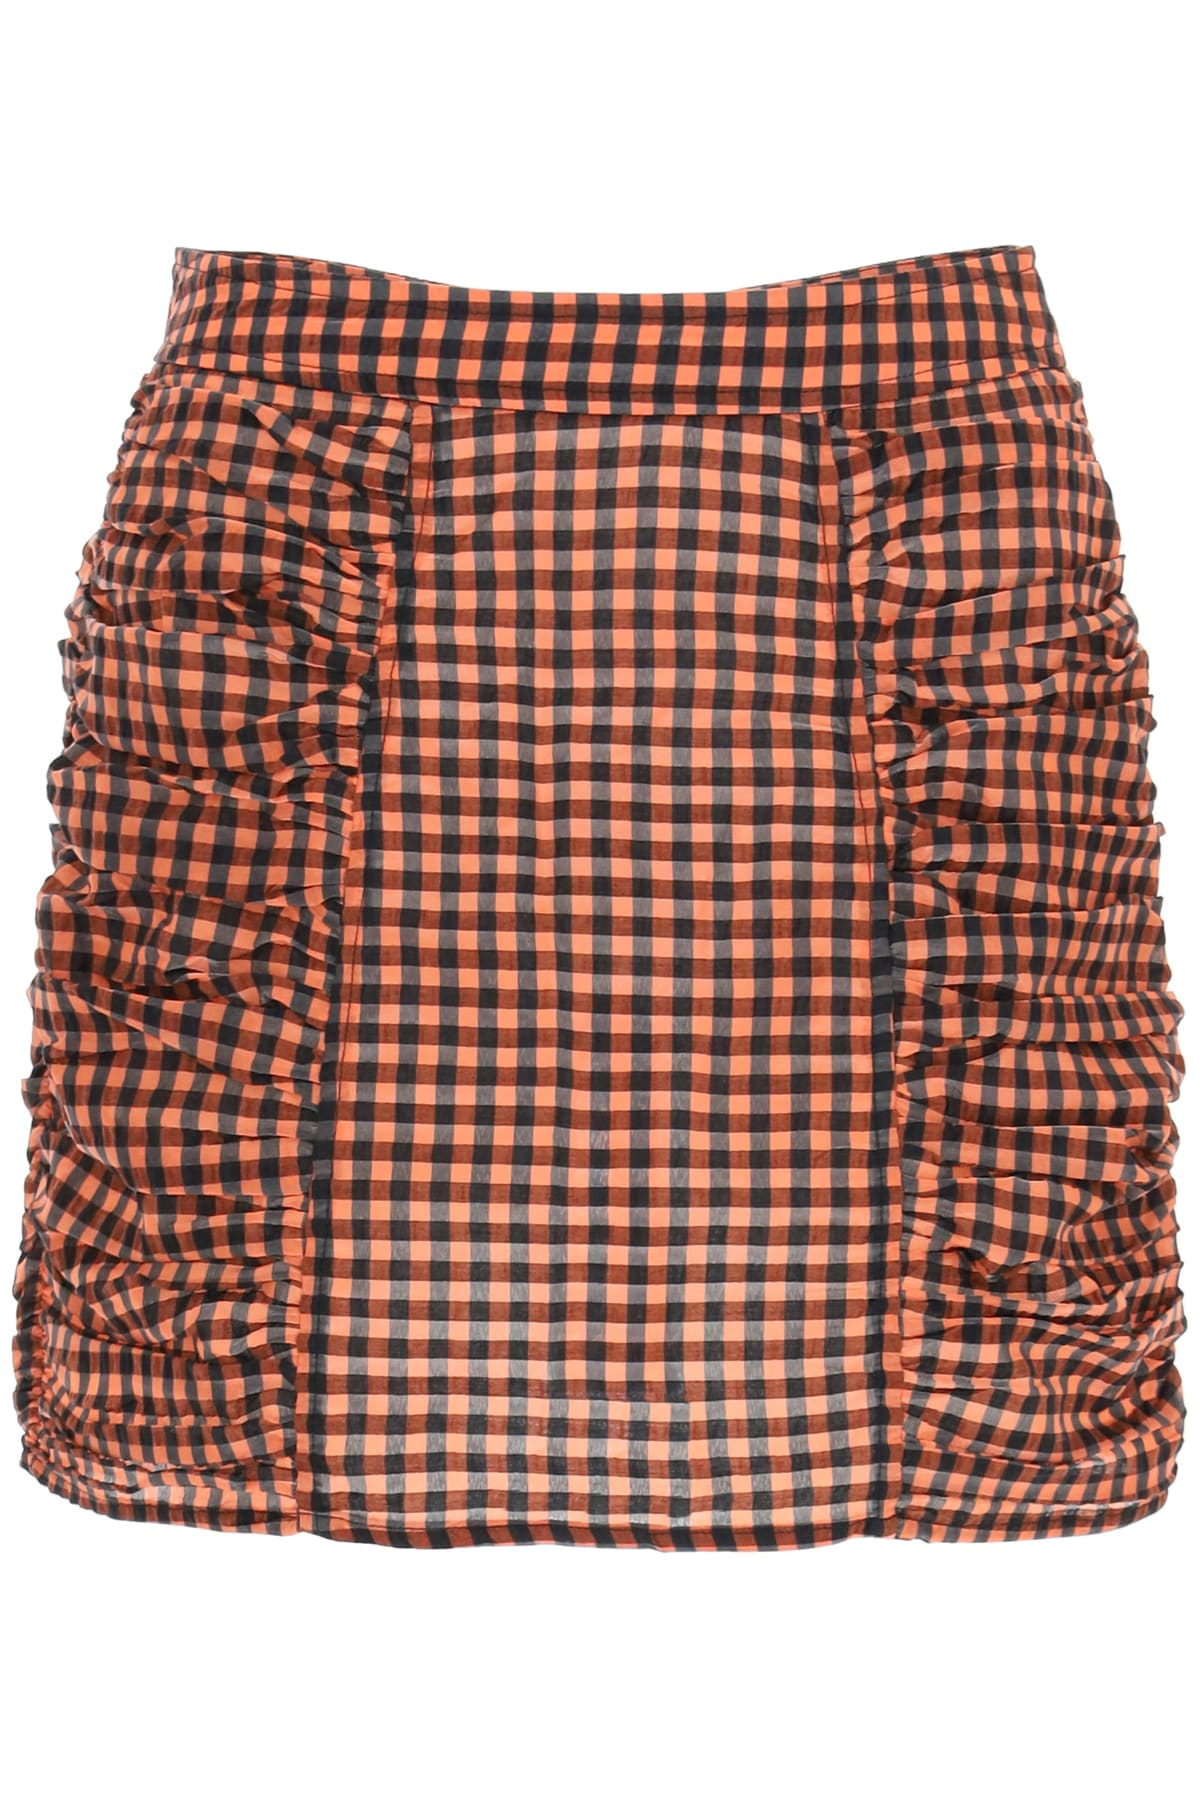 Ganni Seersucker Check Mini Skirt